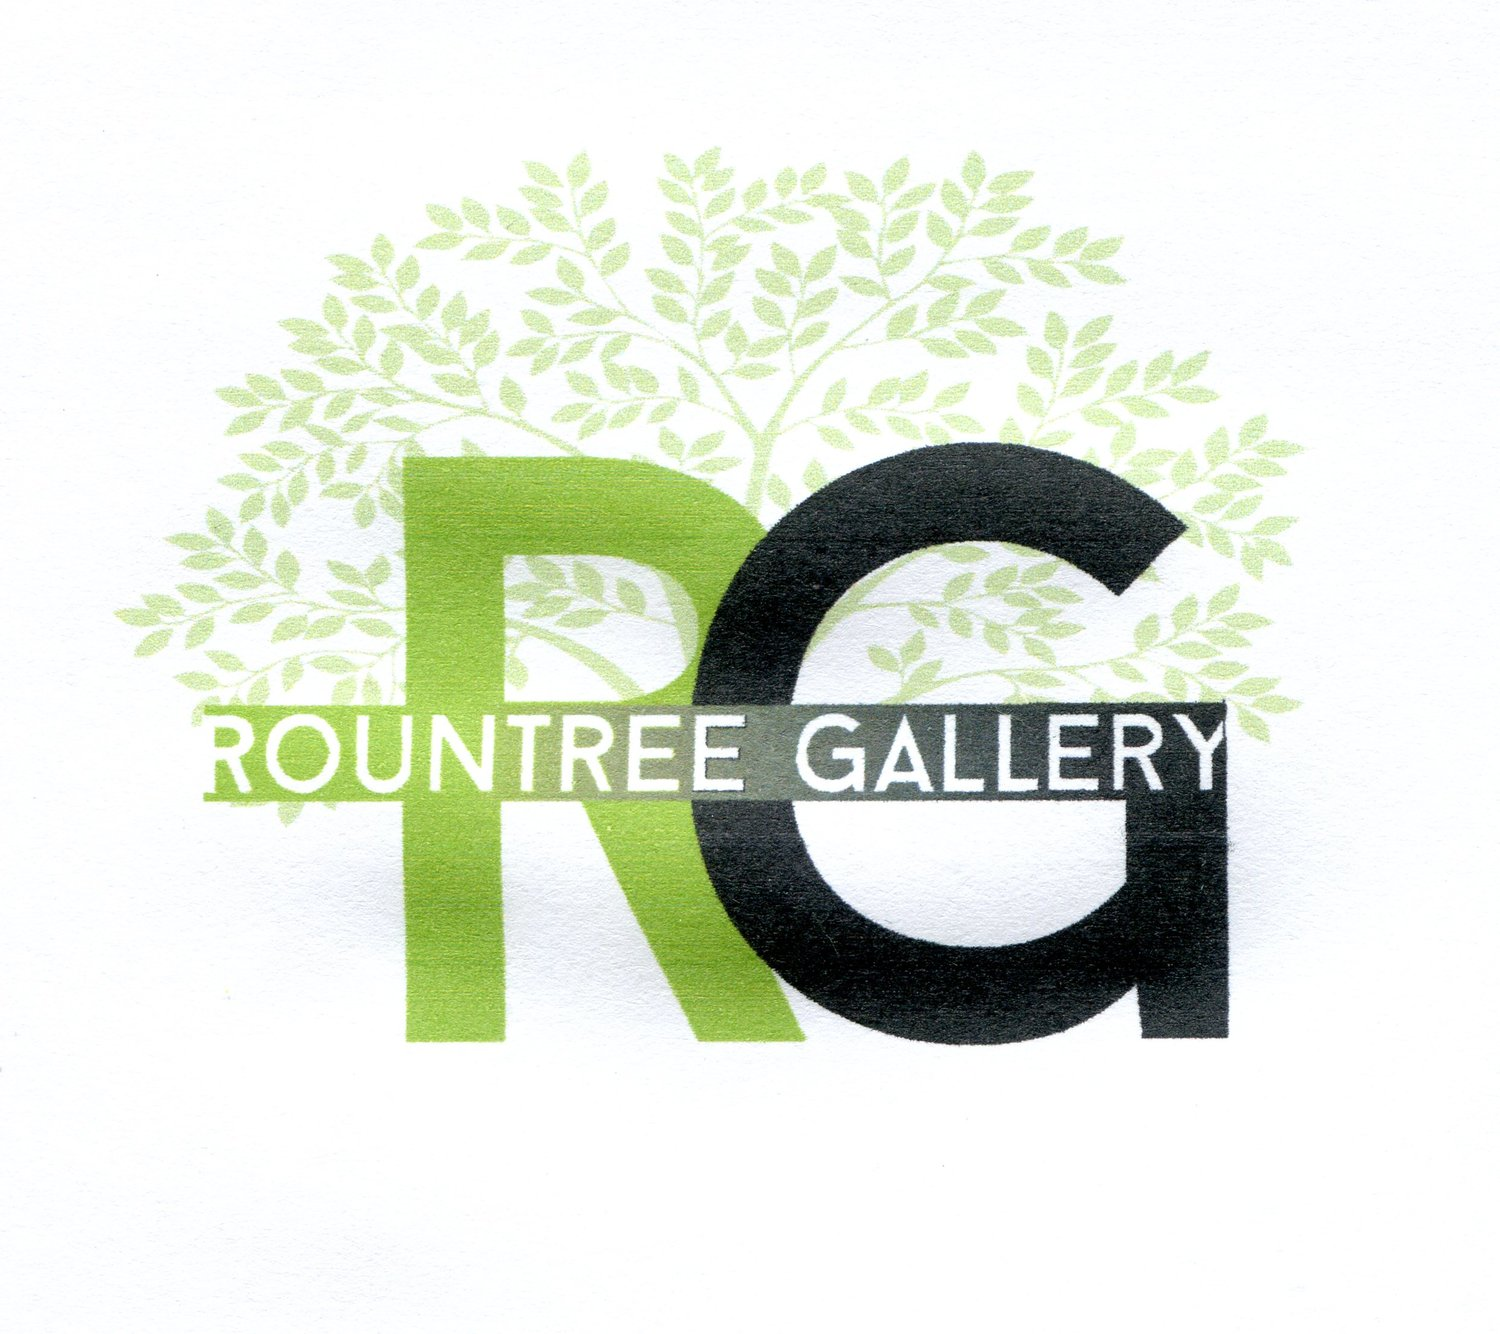 Rountree Gallery